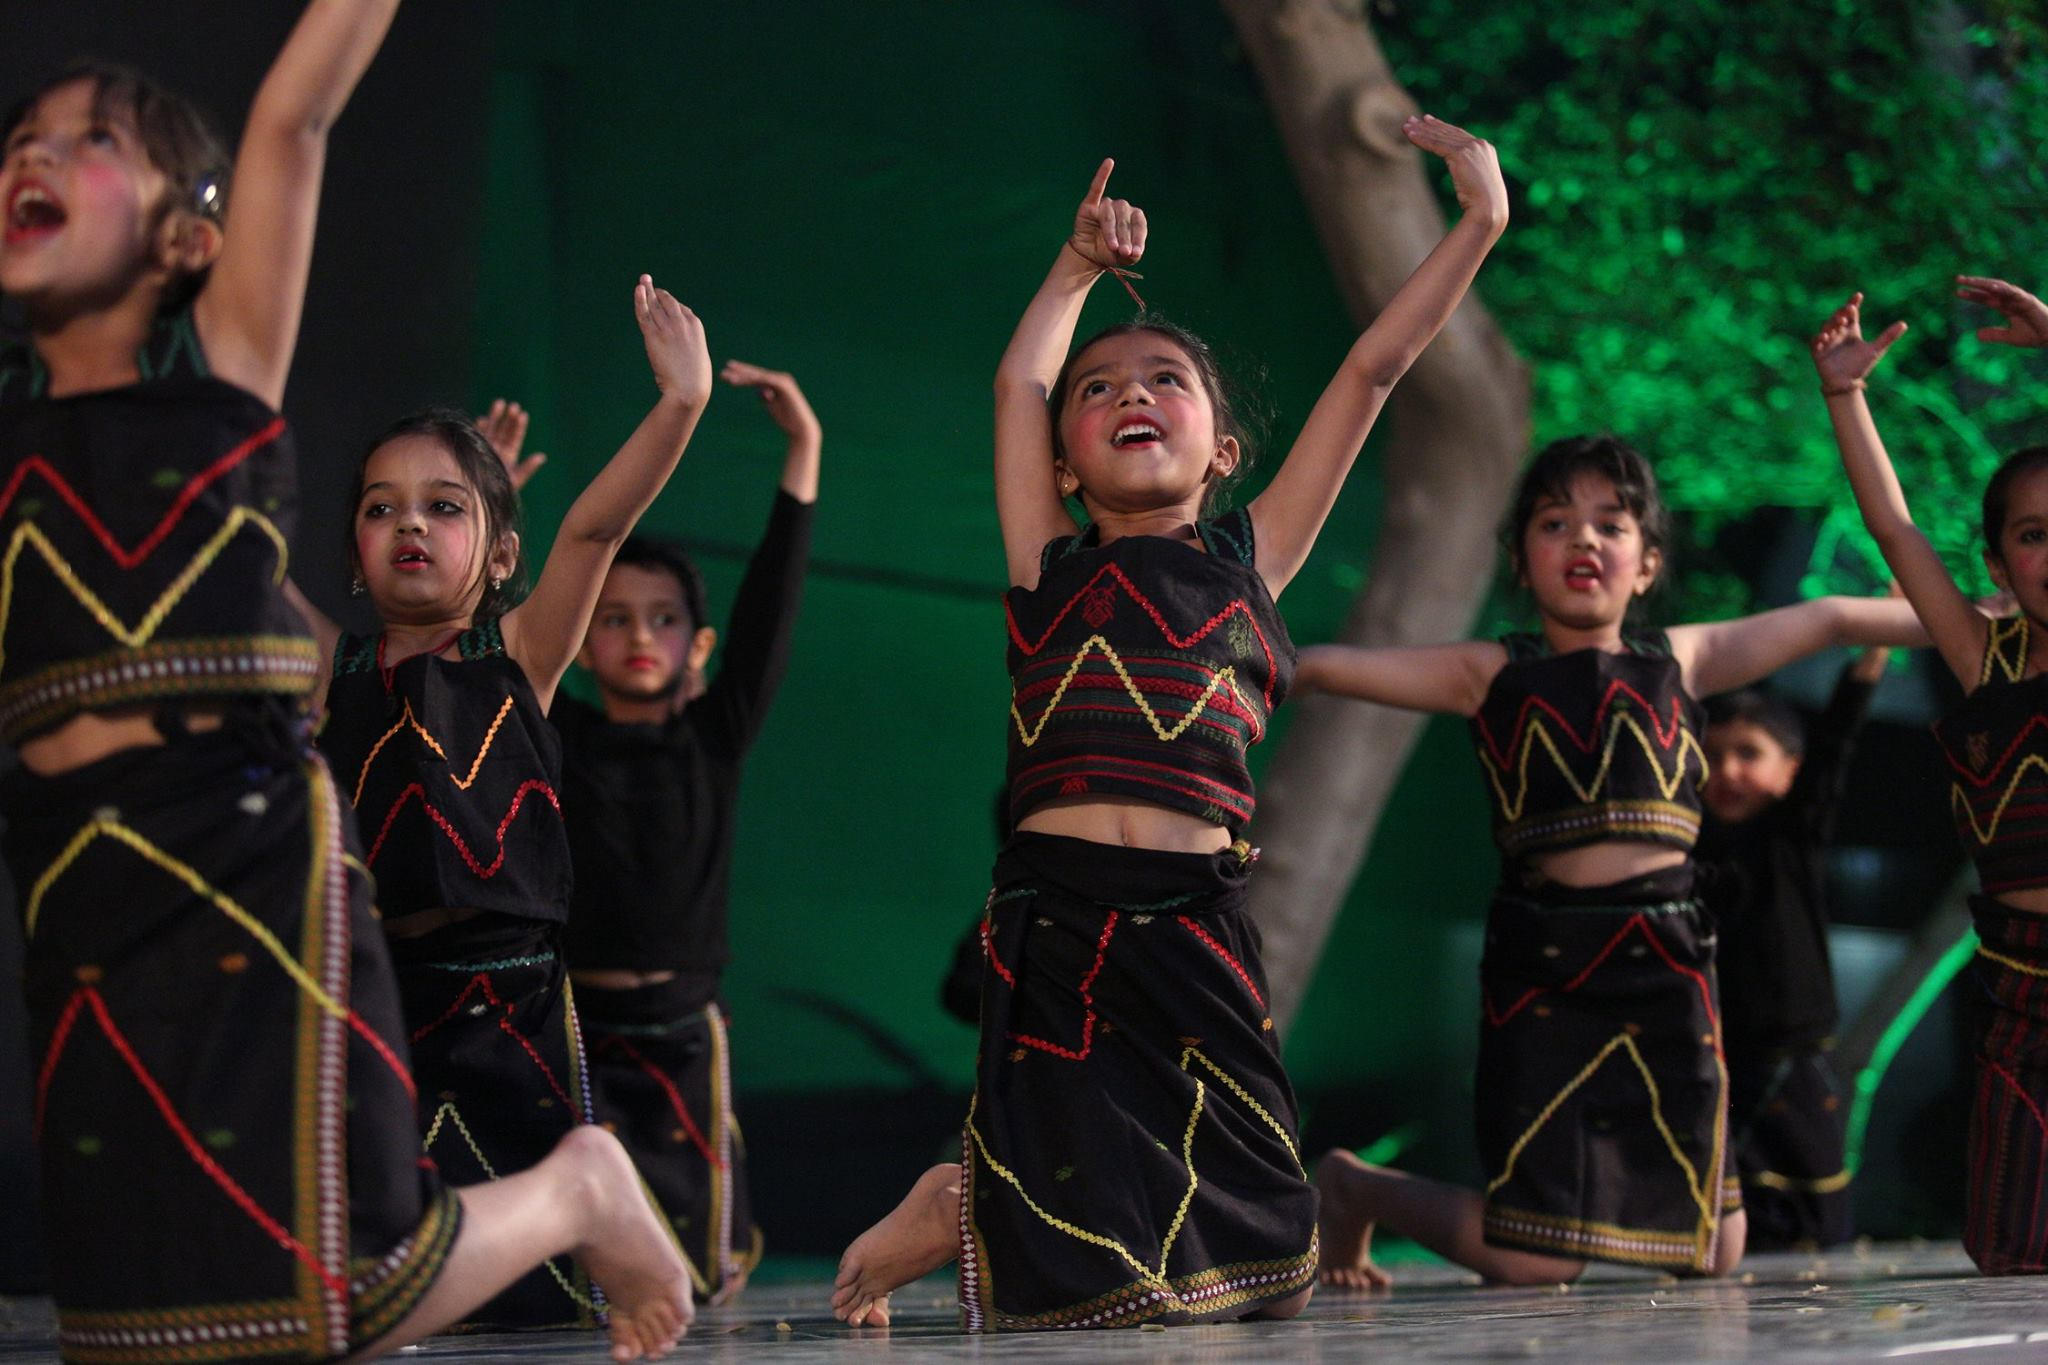 Photo by R.J. Partington from our 2016 school performance at Happy Hours School in Jodhpur, Rajasthan, India.